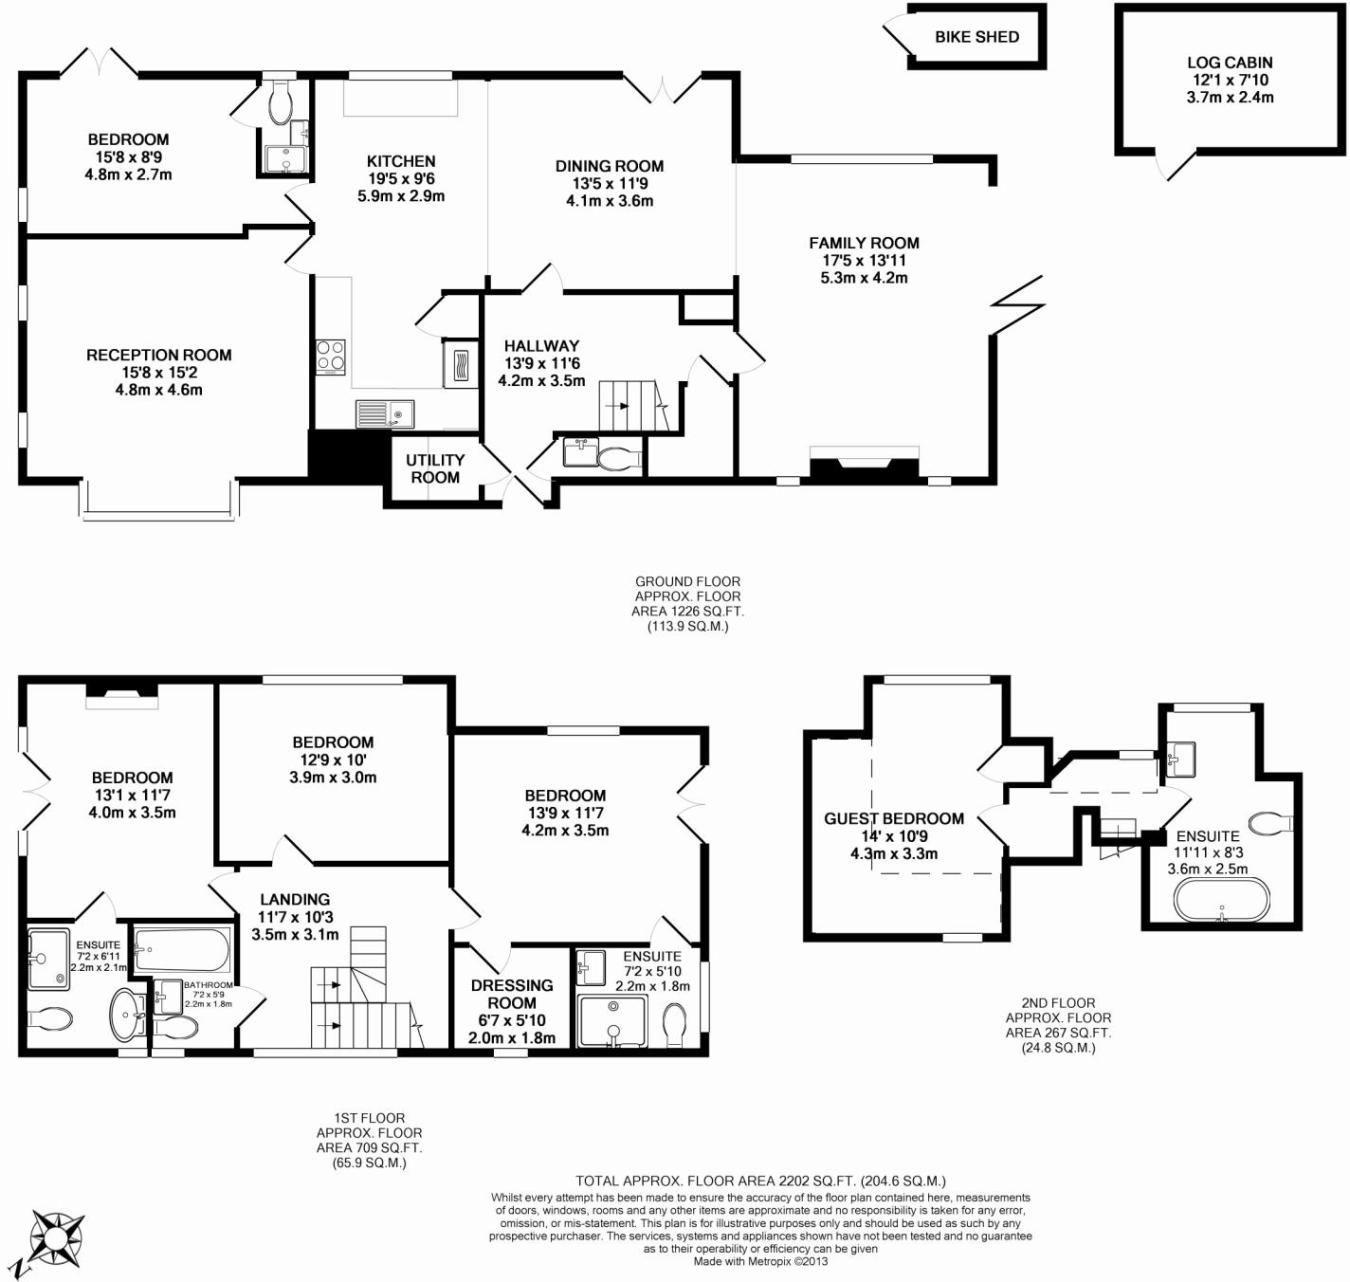 Find floor plans by address home alone house floor plan for Find floor plans by address